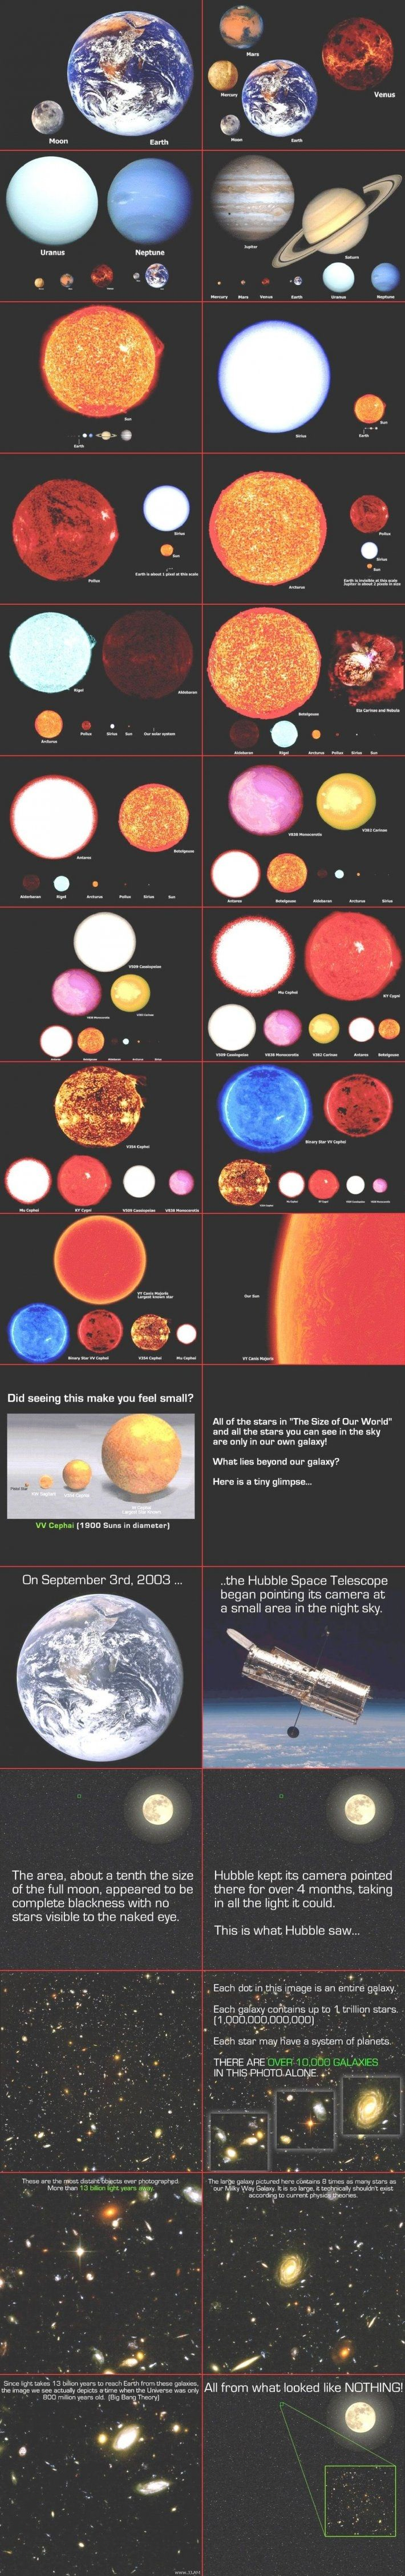 Planetary perspective.